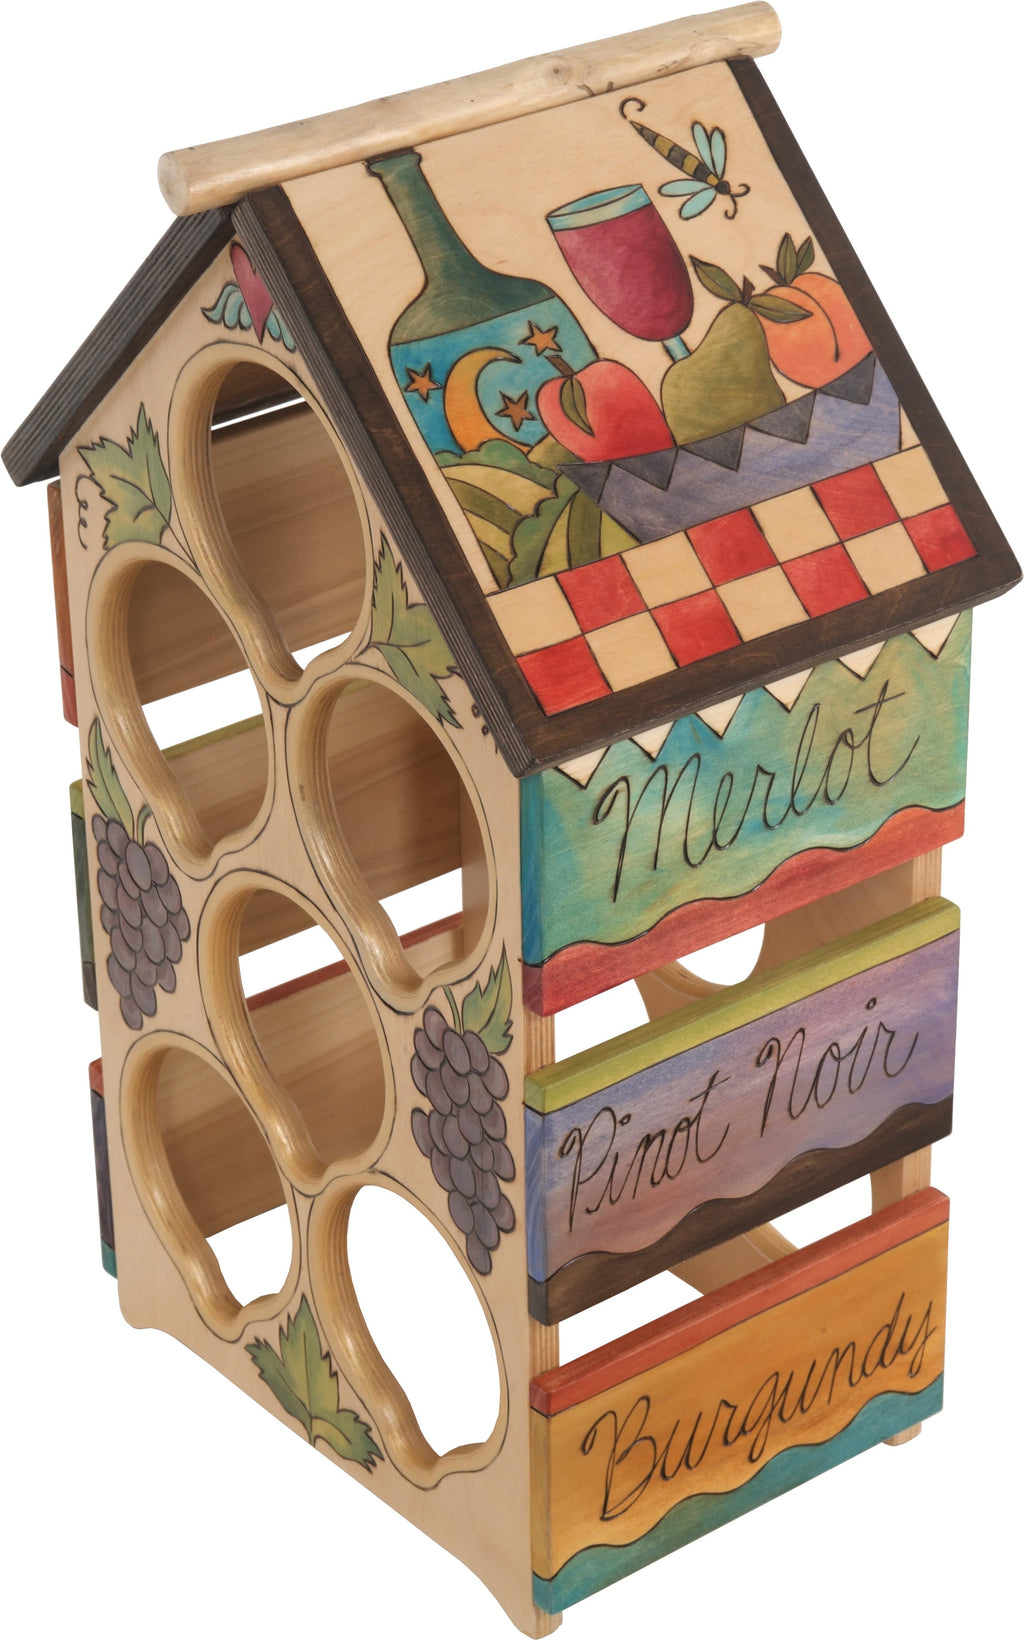 Sticks handmade wine rack with bright and colorful imagery